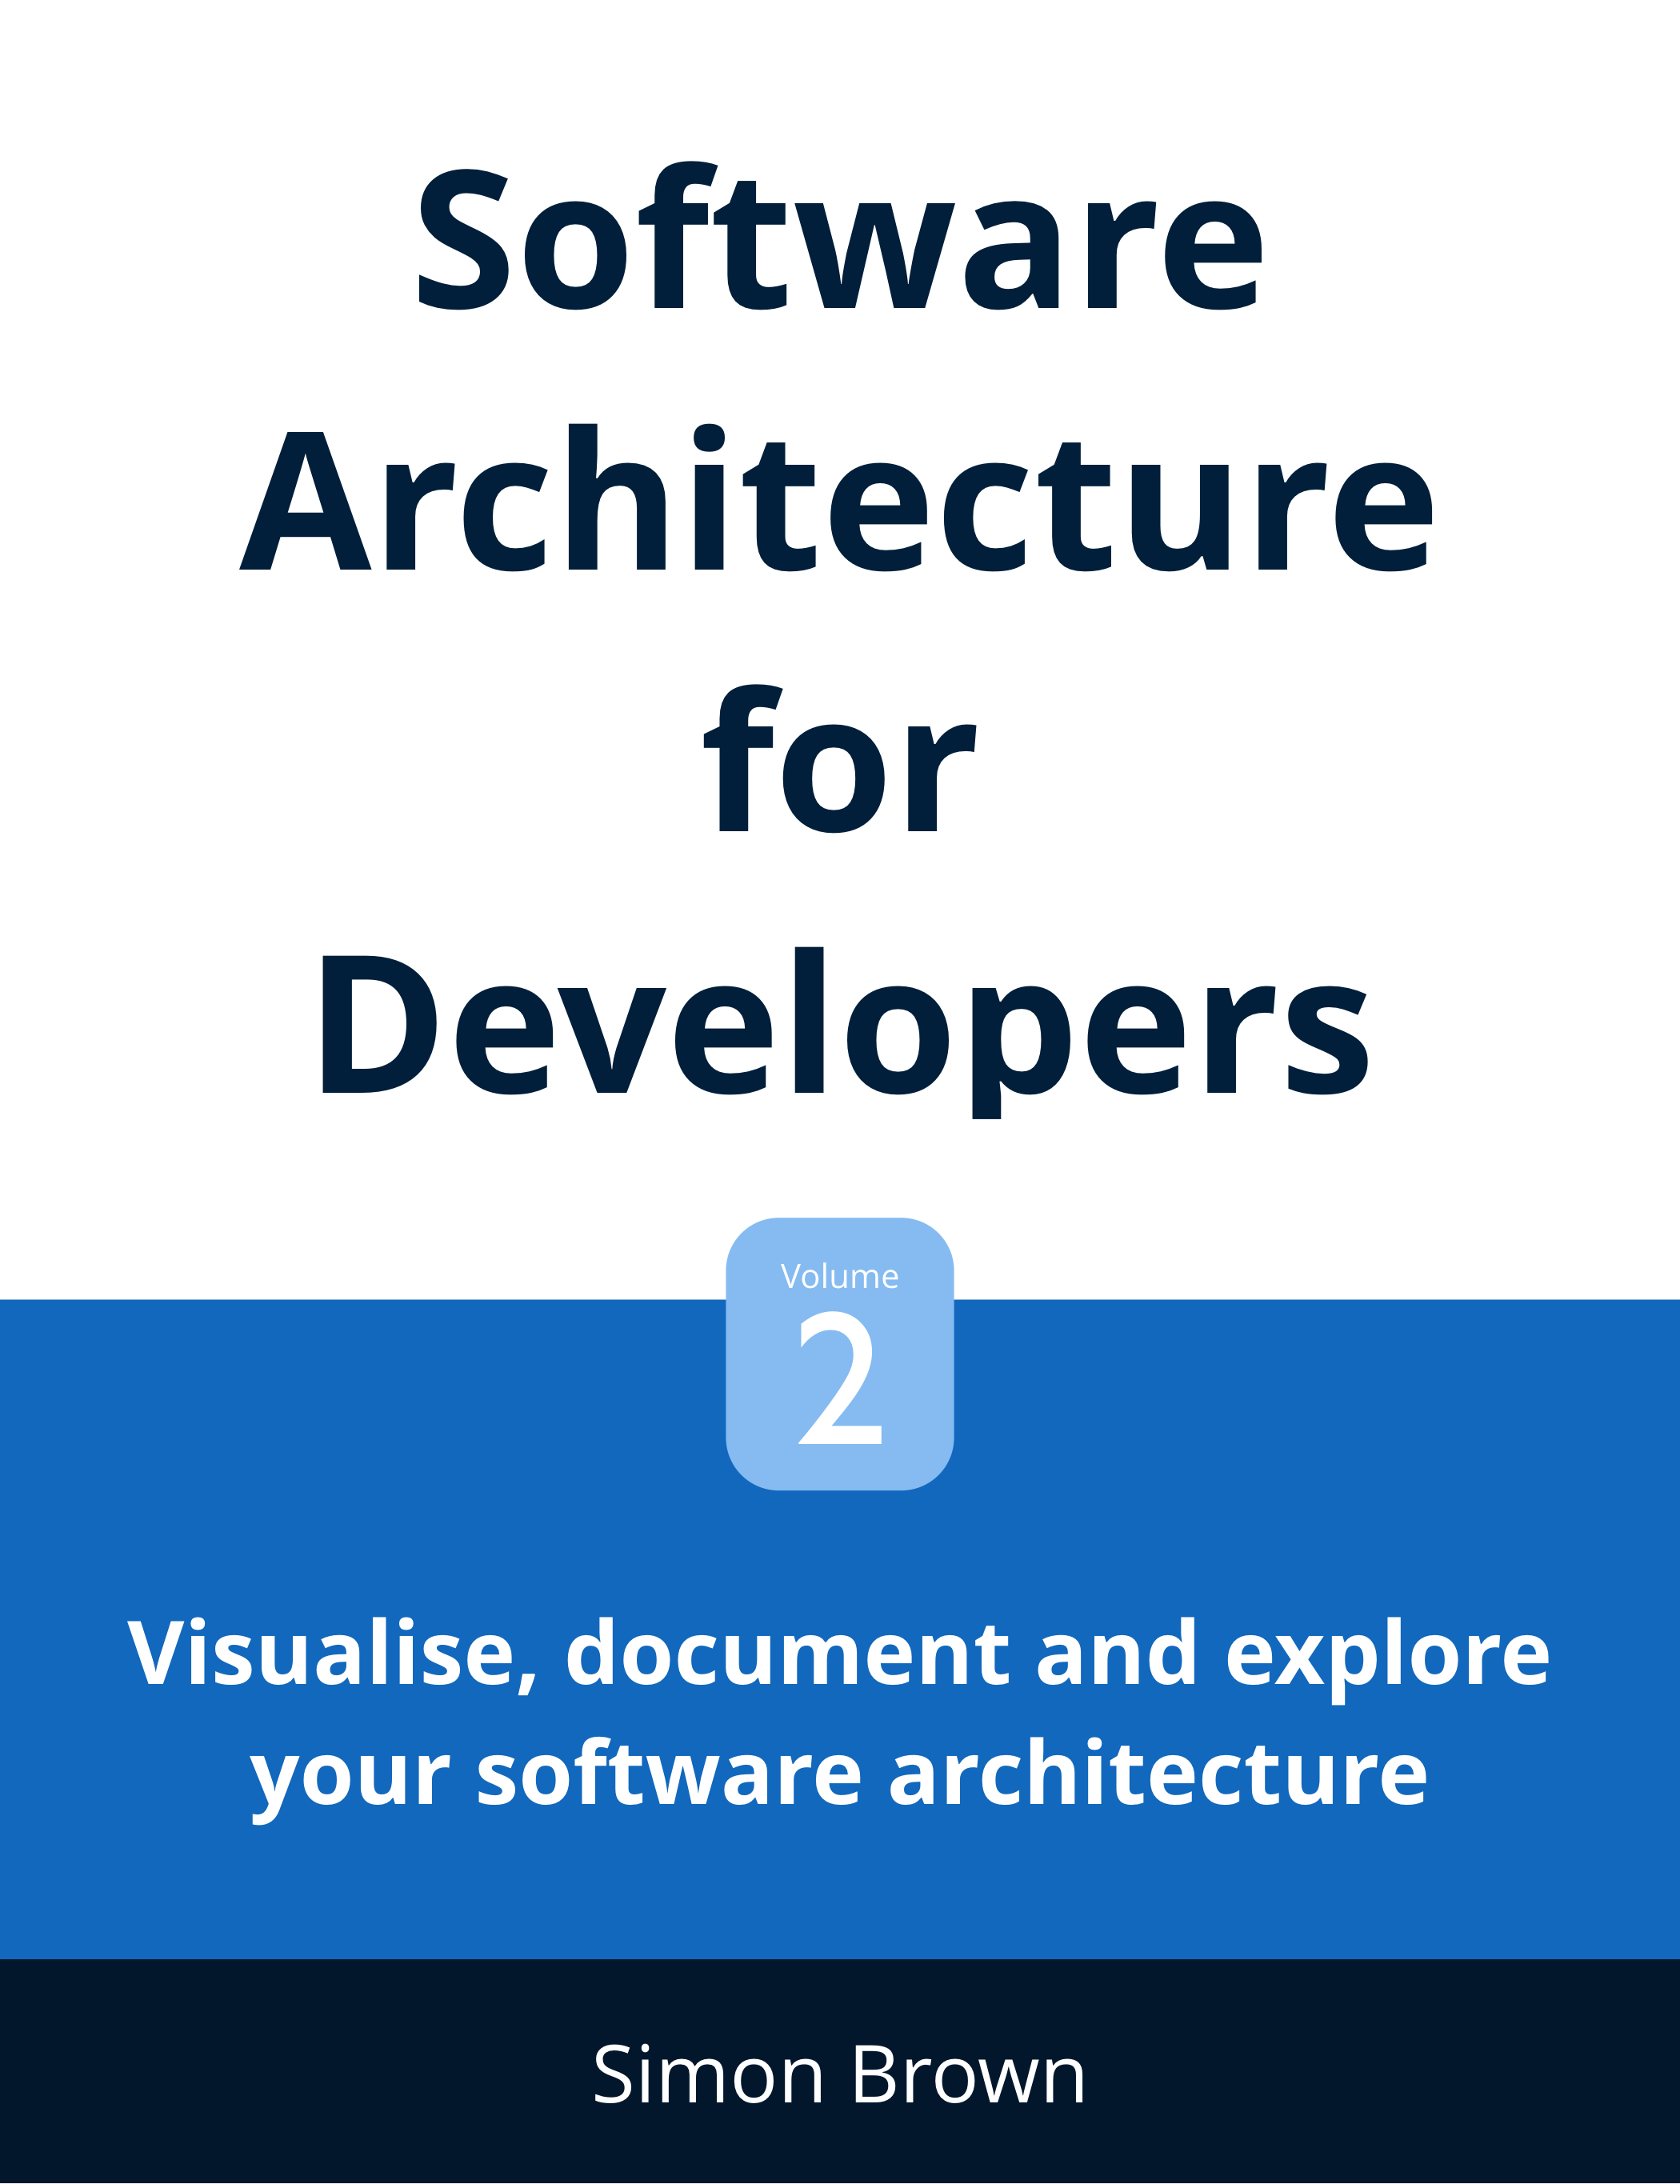 Software Architecture for Developers: Volume 2